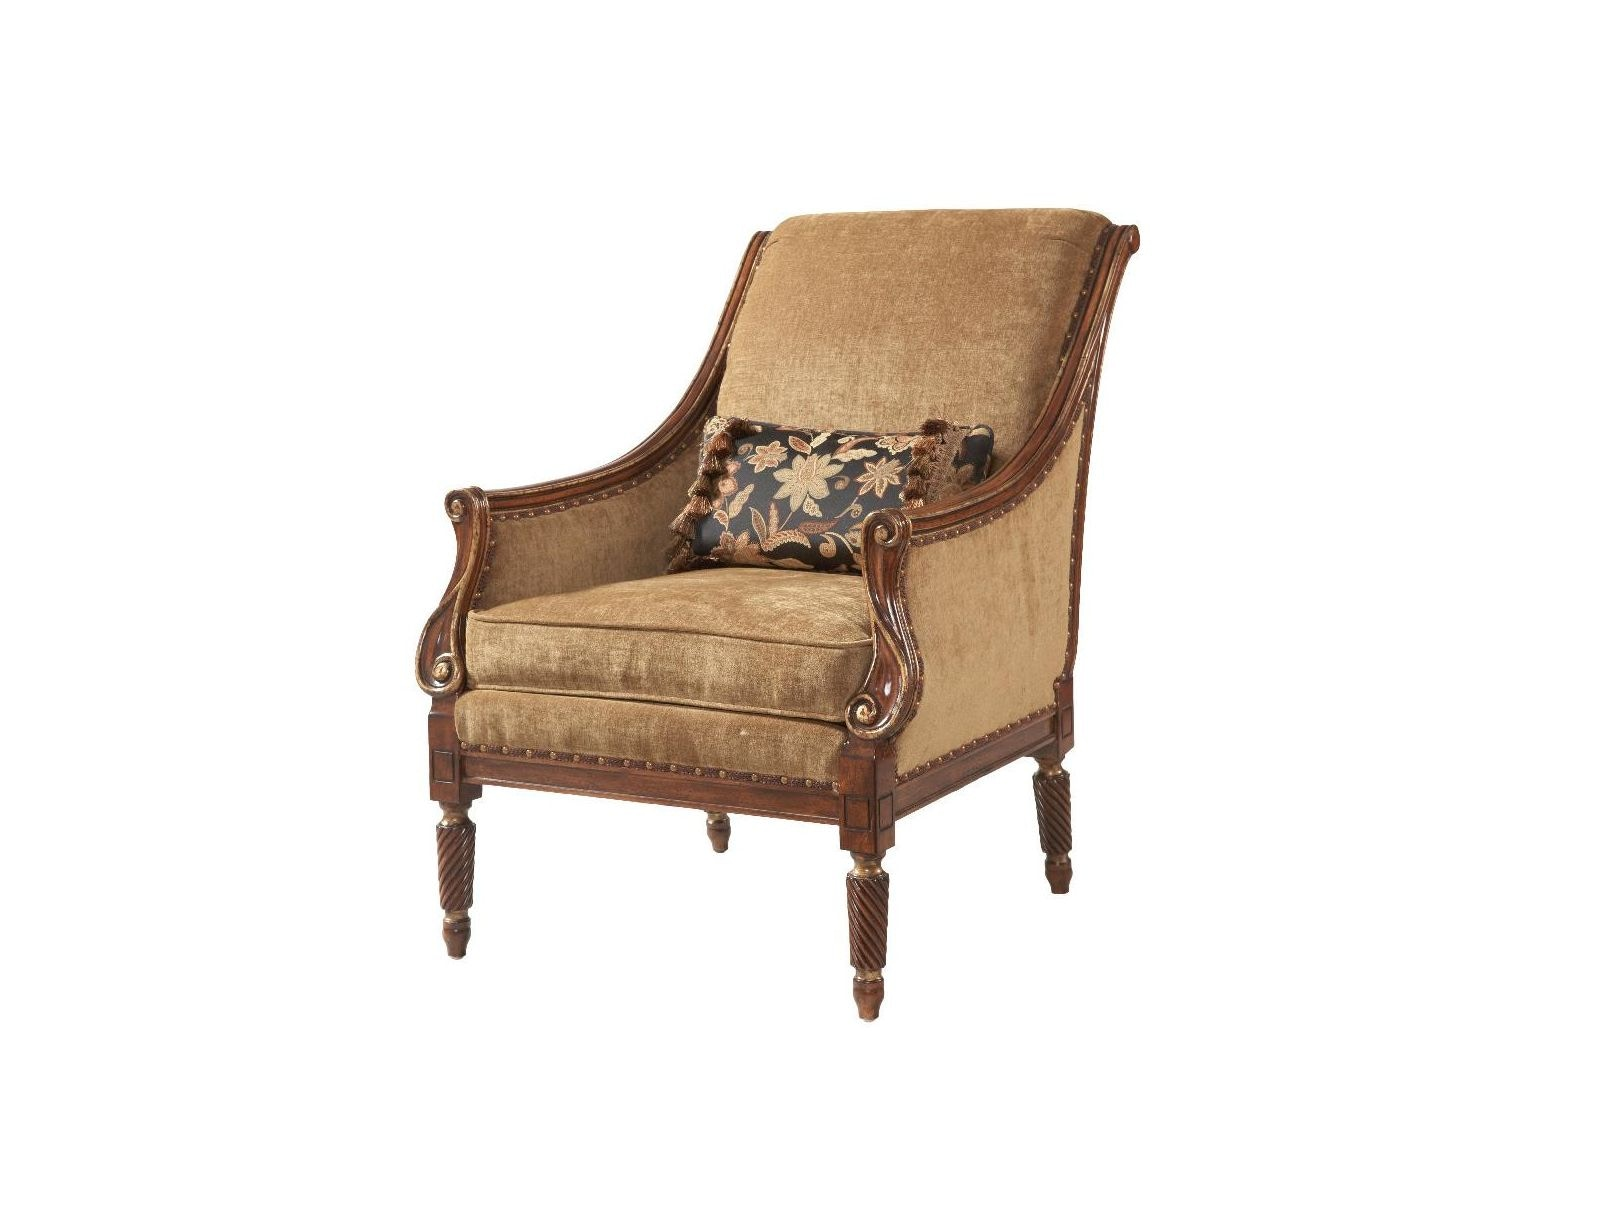 Fine Furniture Design Living Room Chair 0811 03 Marty